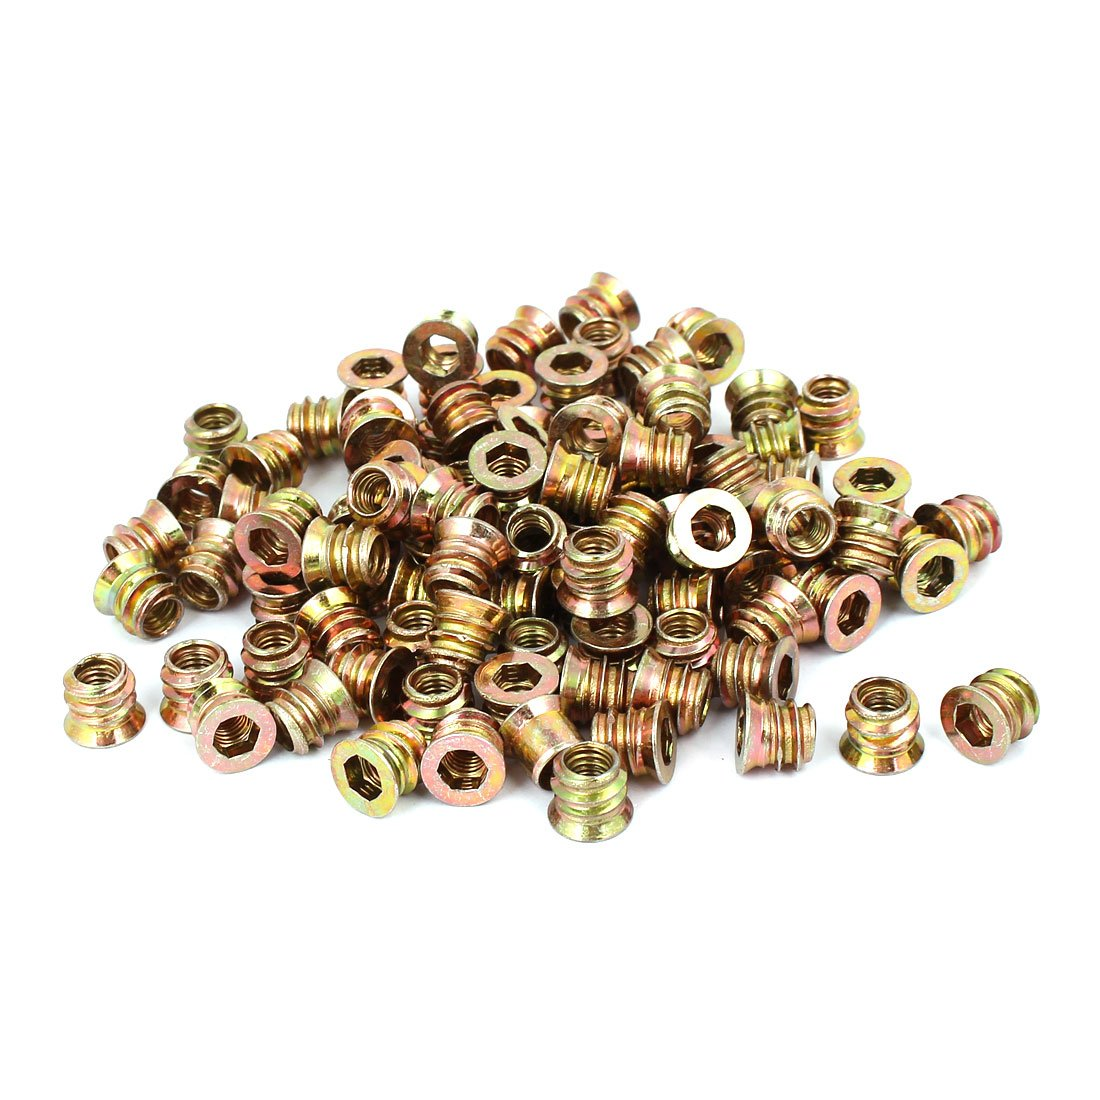 uxcell M6 x 10mm Furniture Hex Key Type E-Nut Wood Insert Interface Screws Nuts 100pcs by uxcell